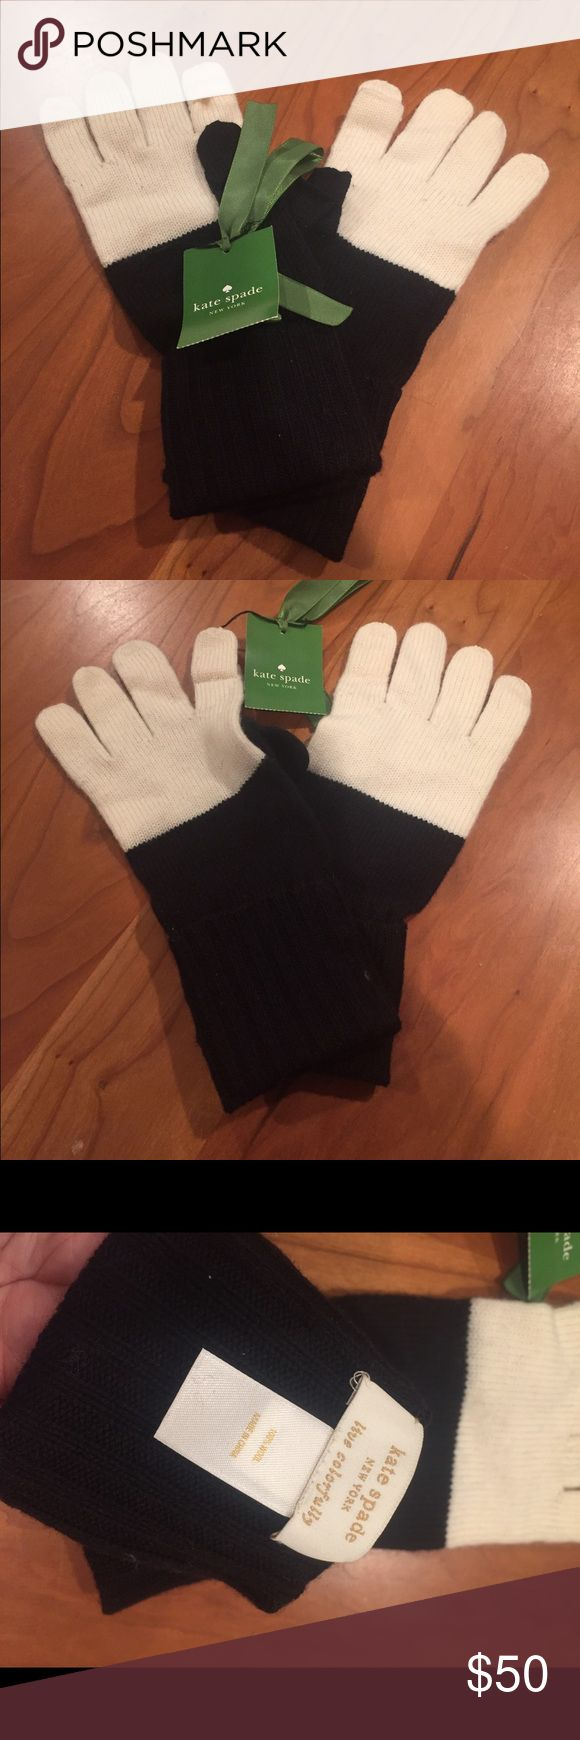 Kate Spade pop top gloves These black and cream gloves are new and never worn. Index finger and thumbs tips have ability to pop off for use with smartphones. 100% wool. kate spade Accessories Gloves & Mittens